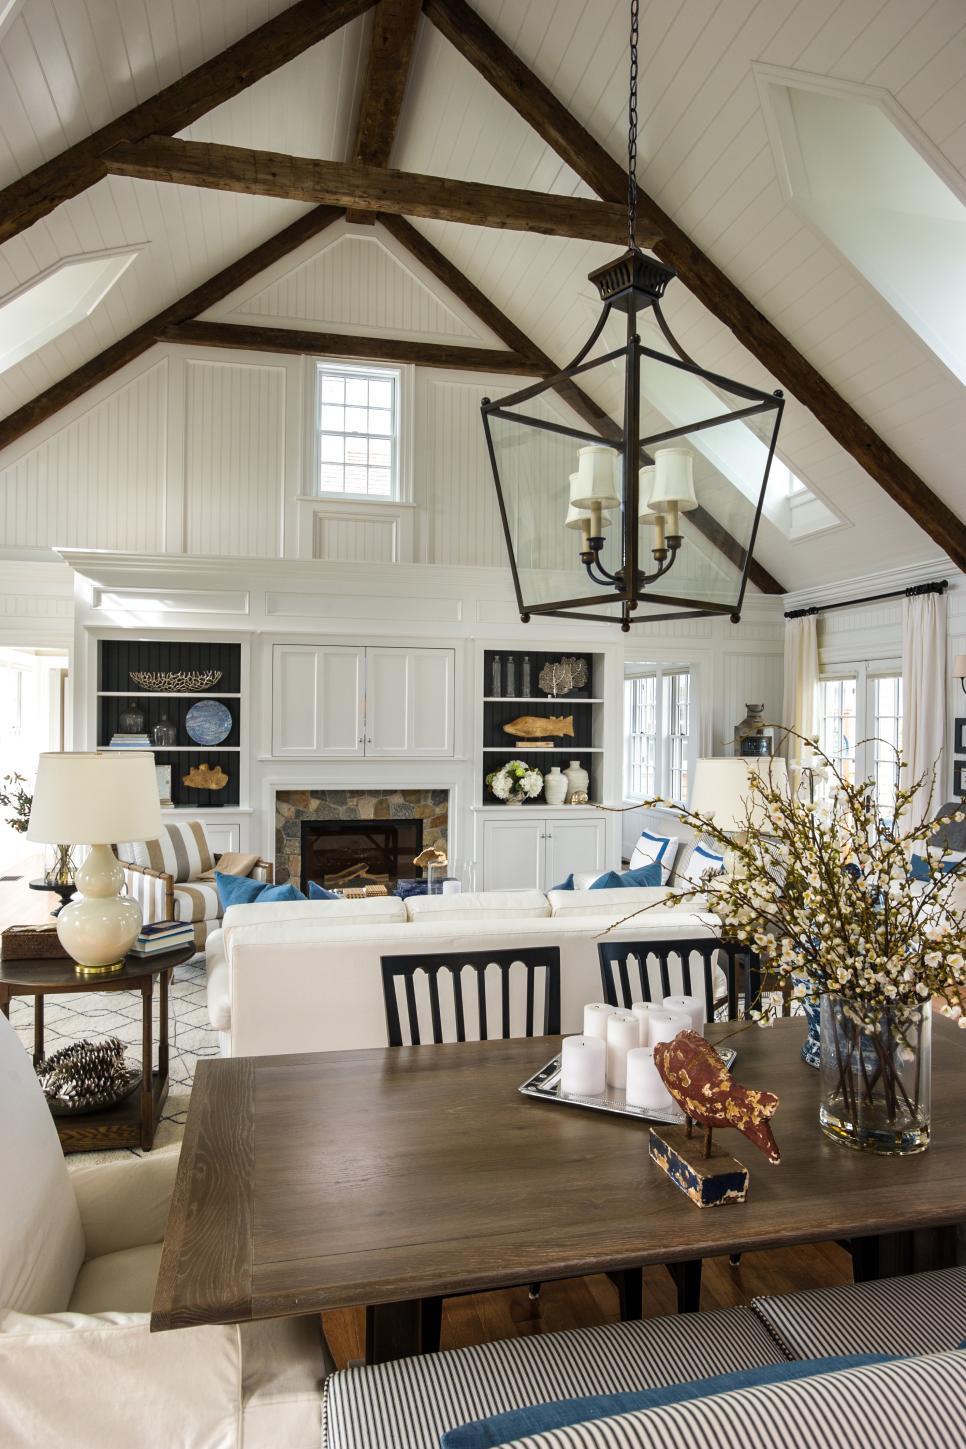 Hgtv dream home 2015 dining room hgtv dream home 2015 Www dreamhome